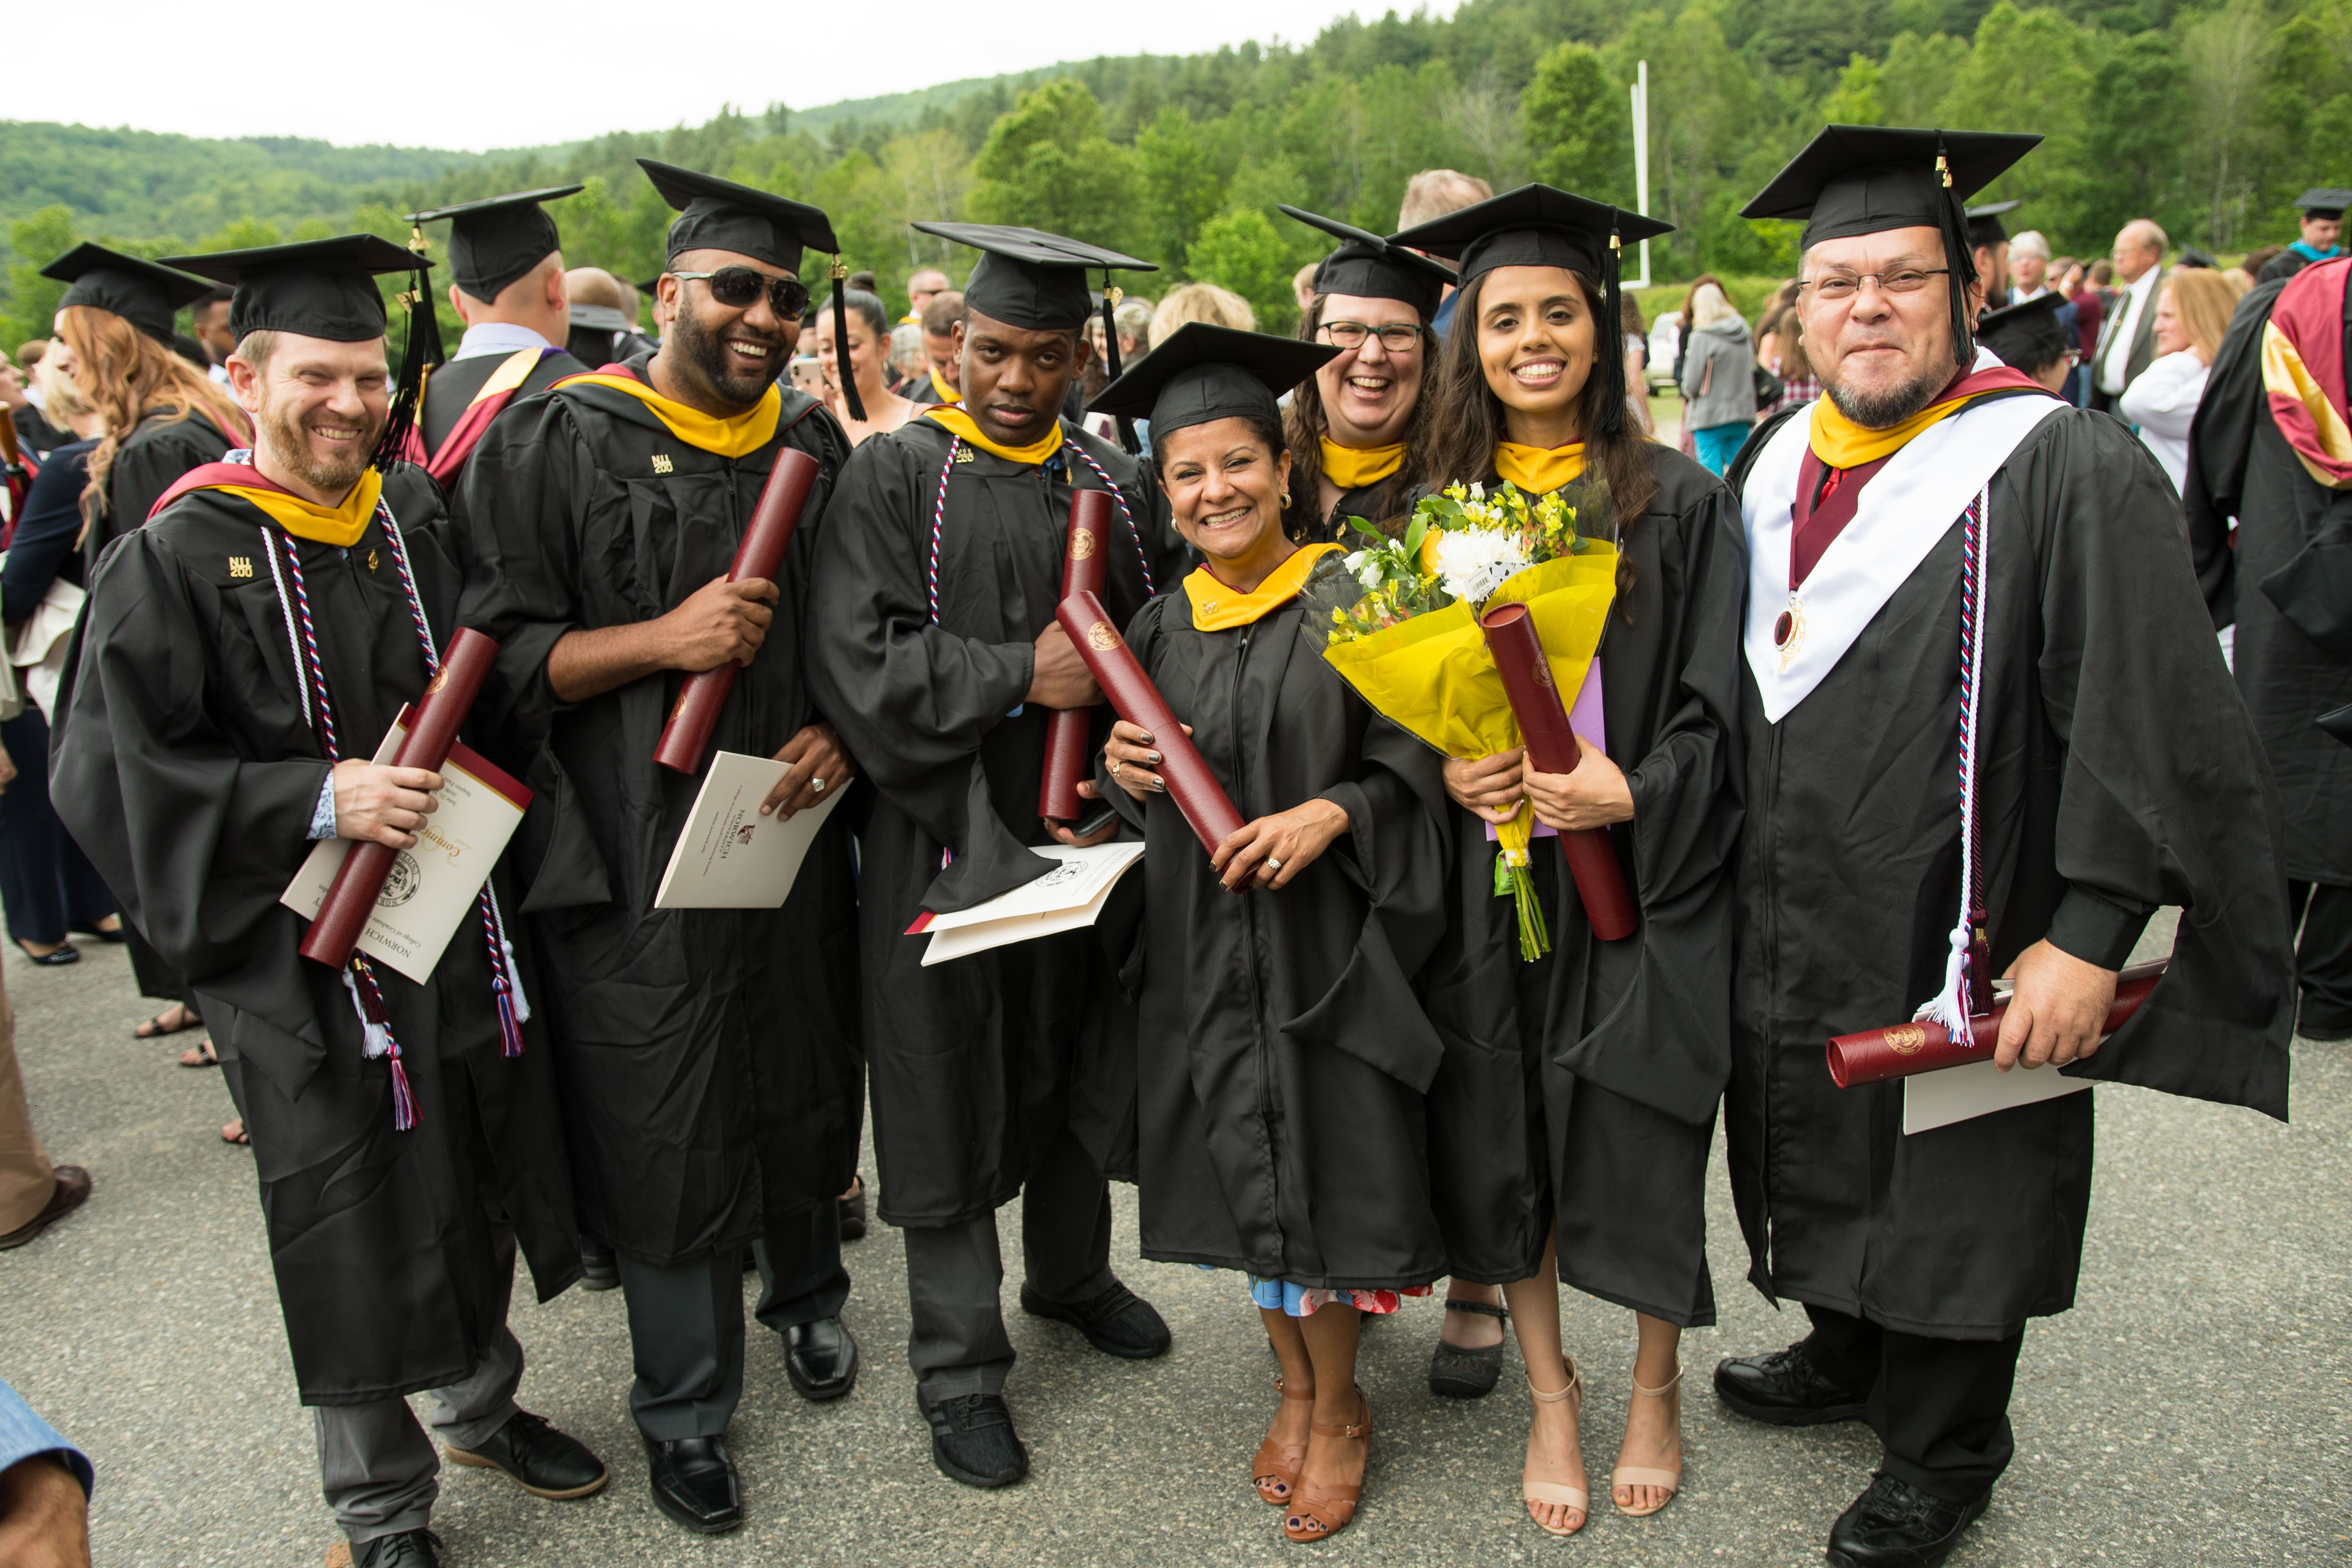 class of 2019 at commencement